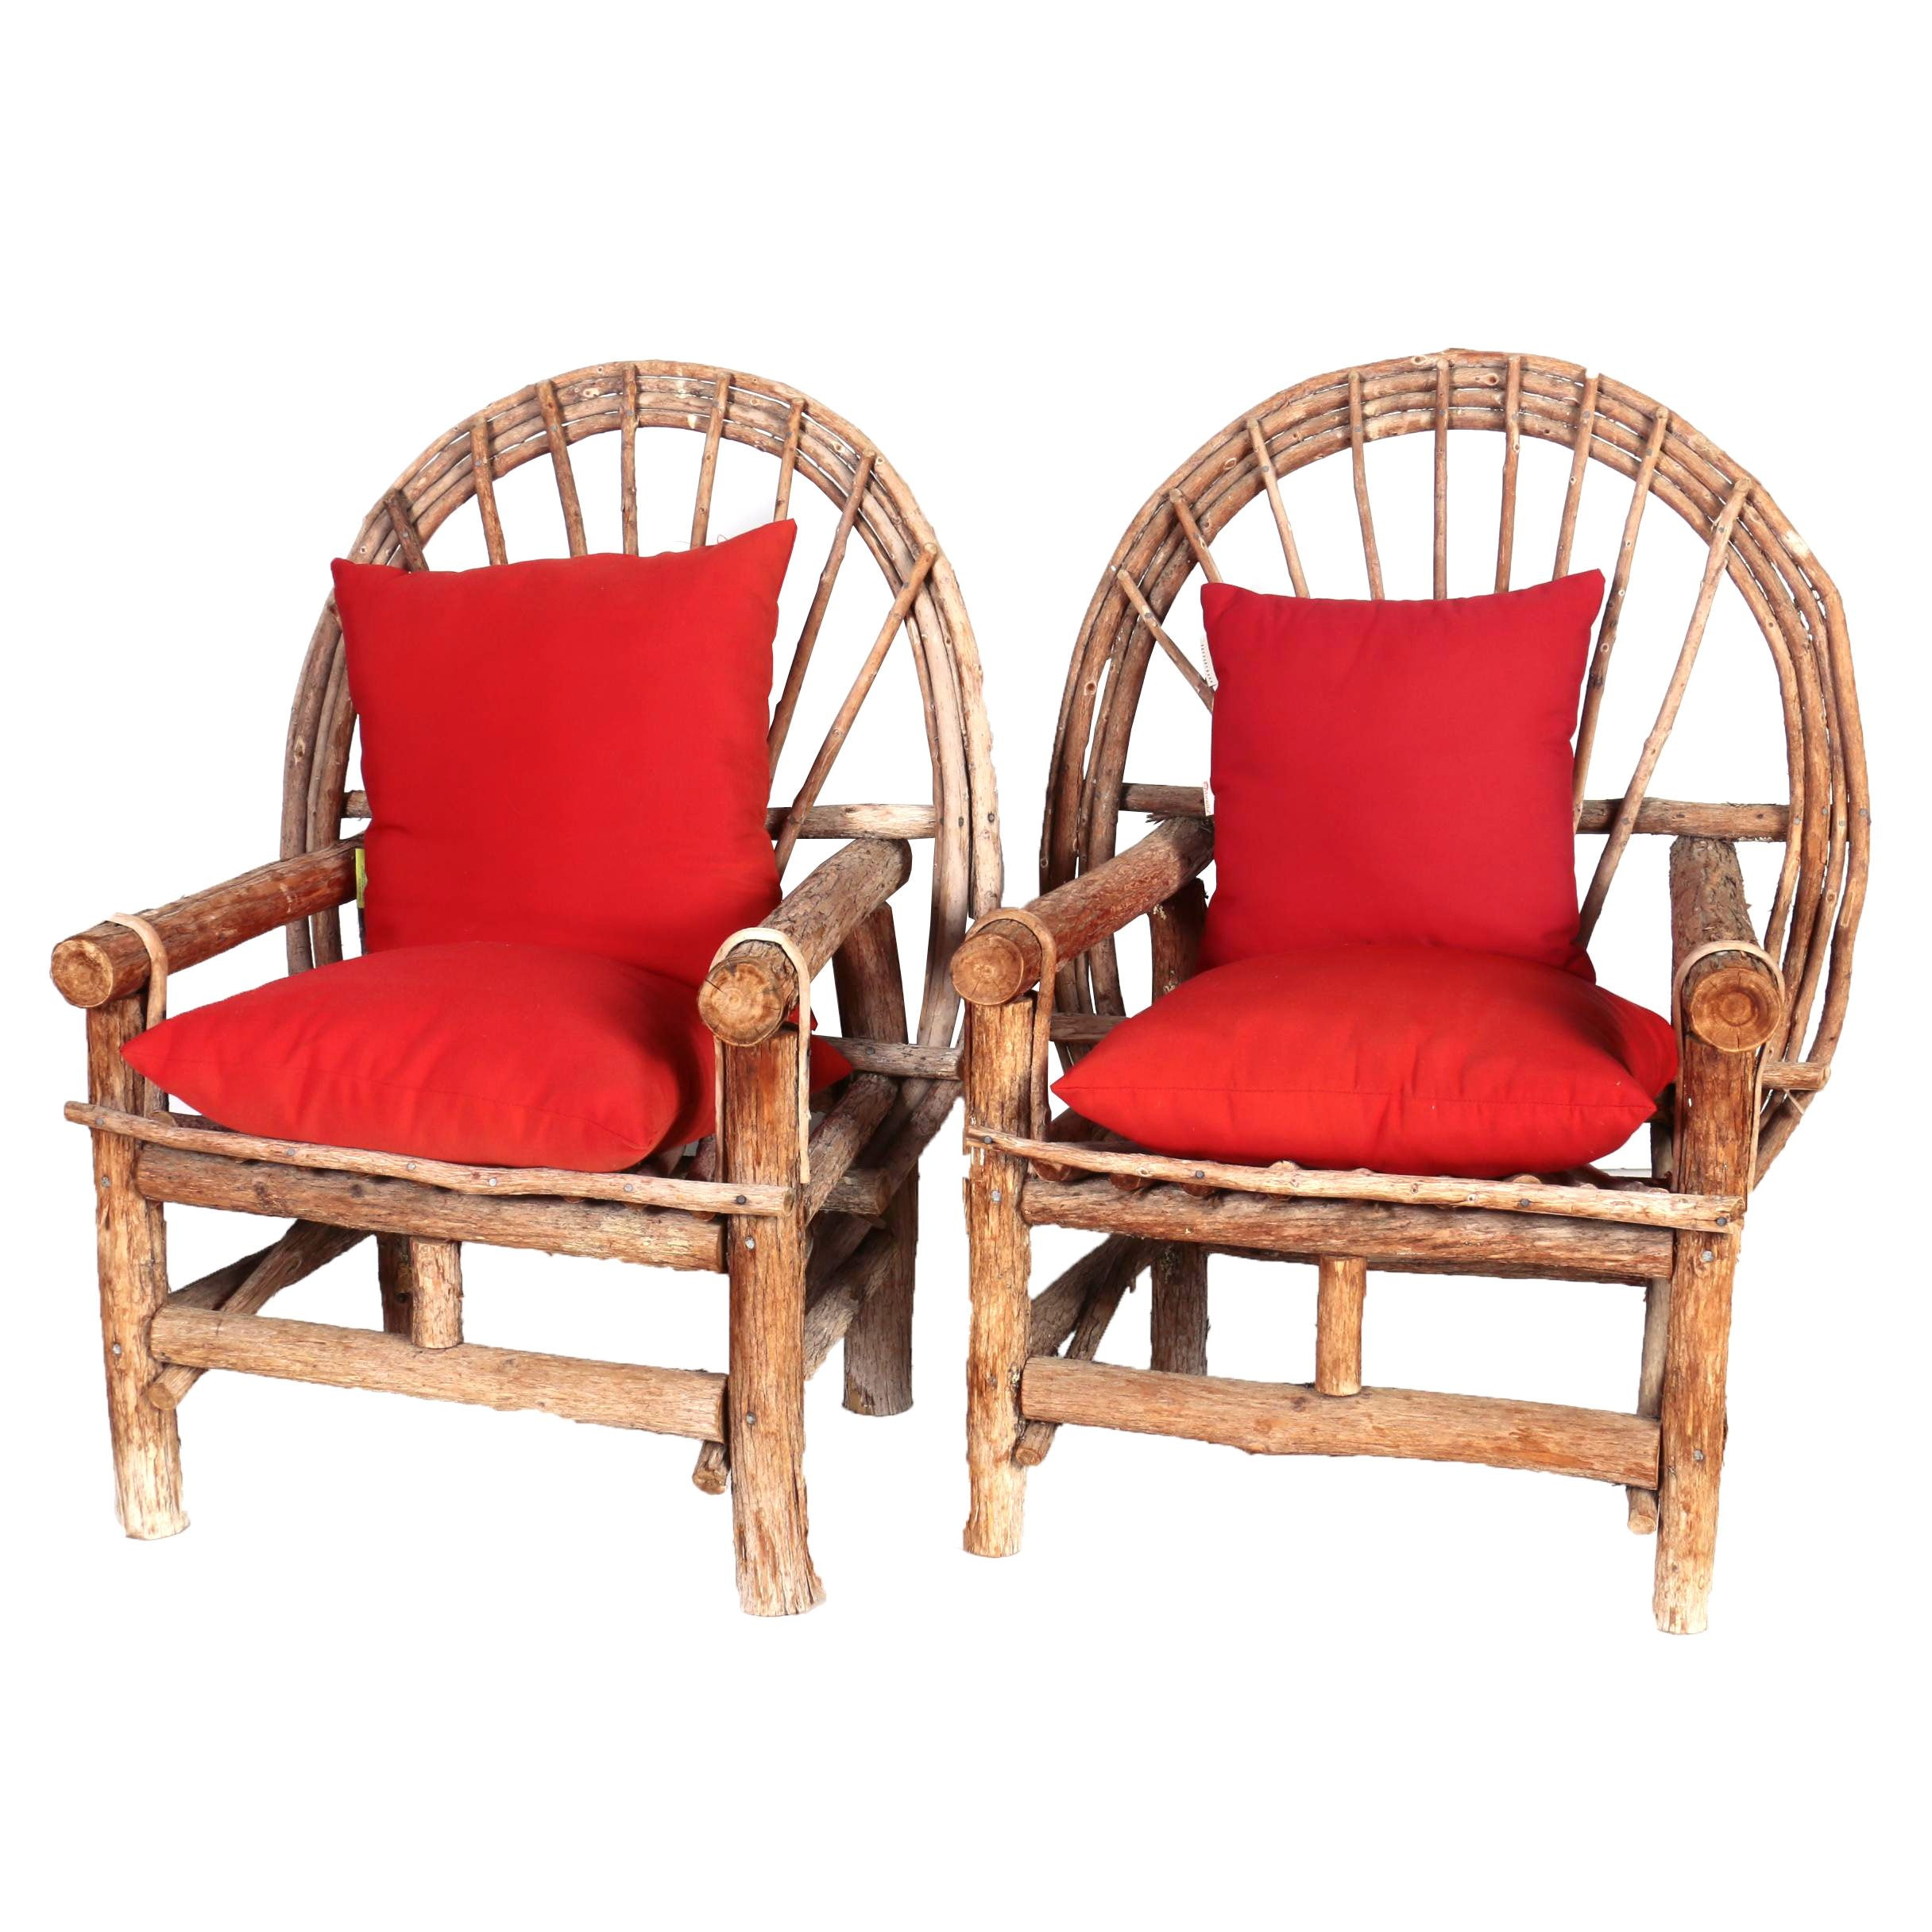 Pair of Handcrafted Bent Twig Patio Armchairs